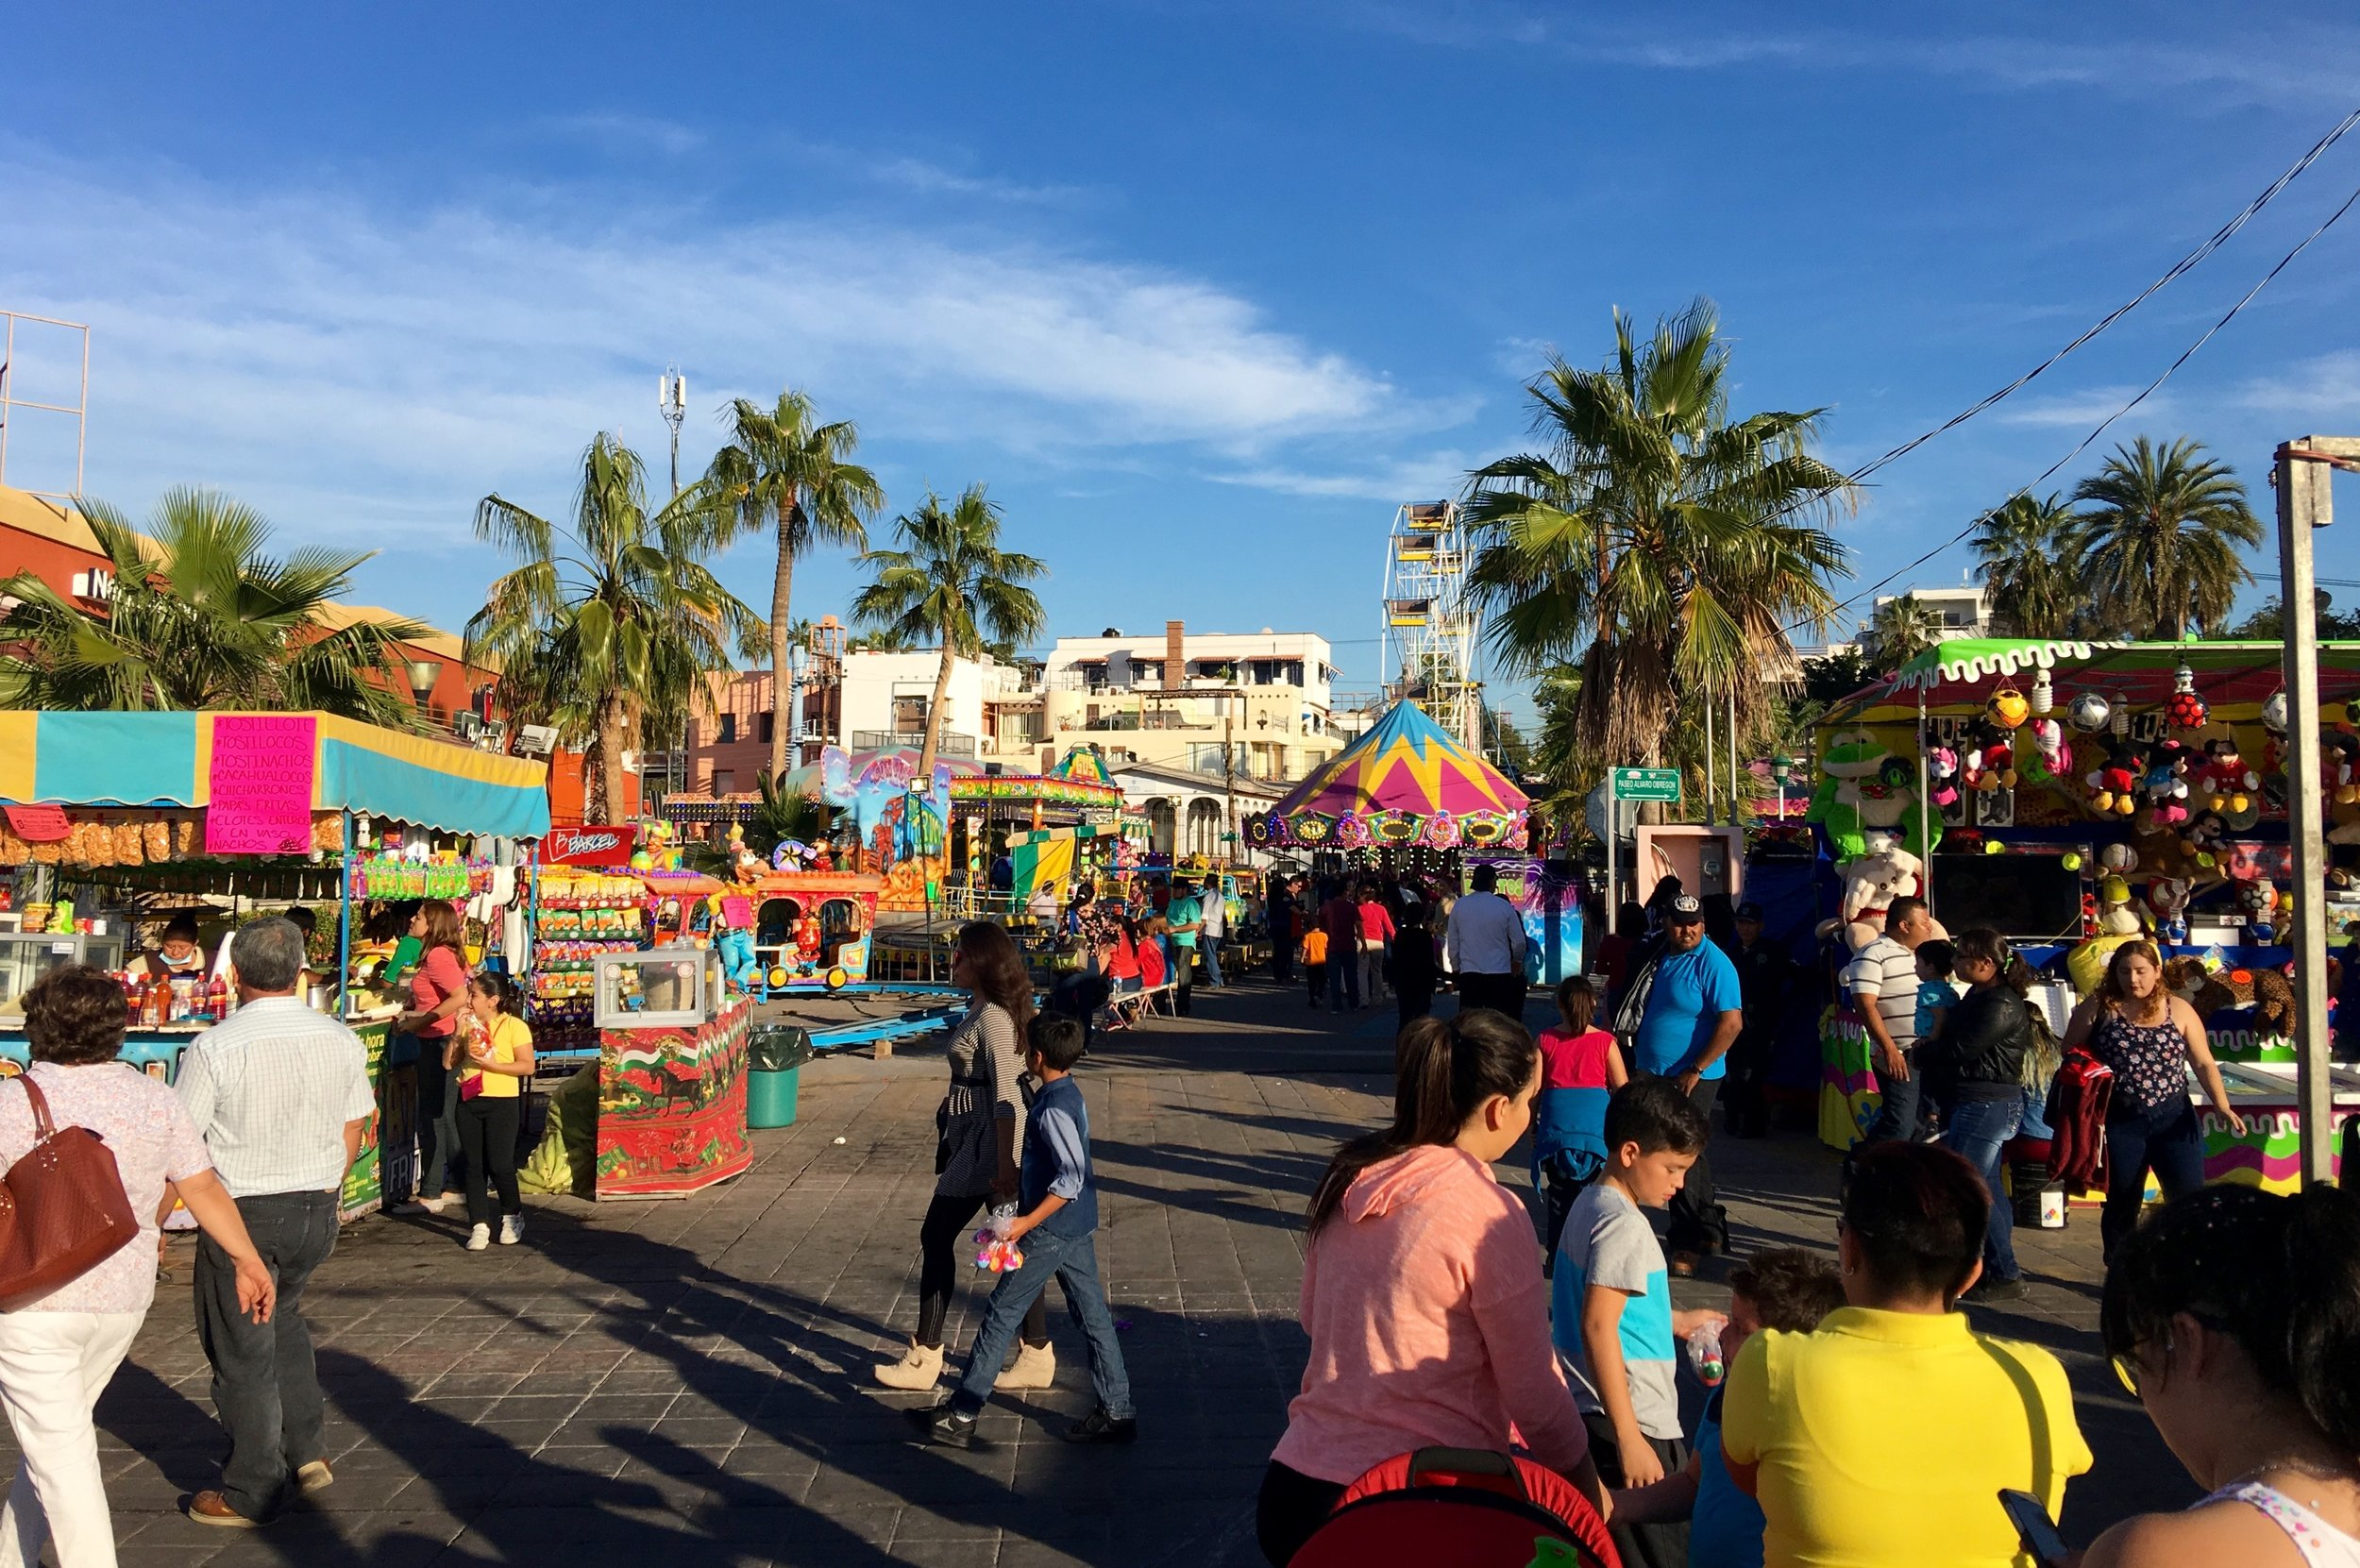 Food and games were the main activities until the parade started and the music began.